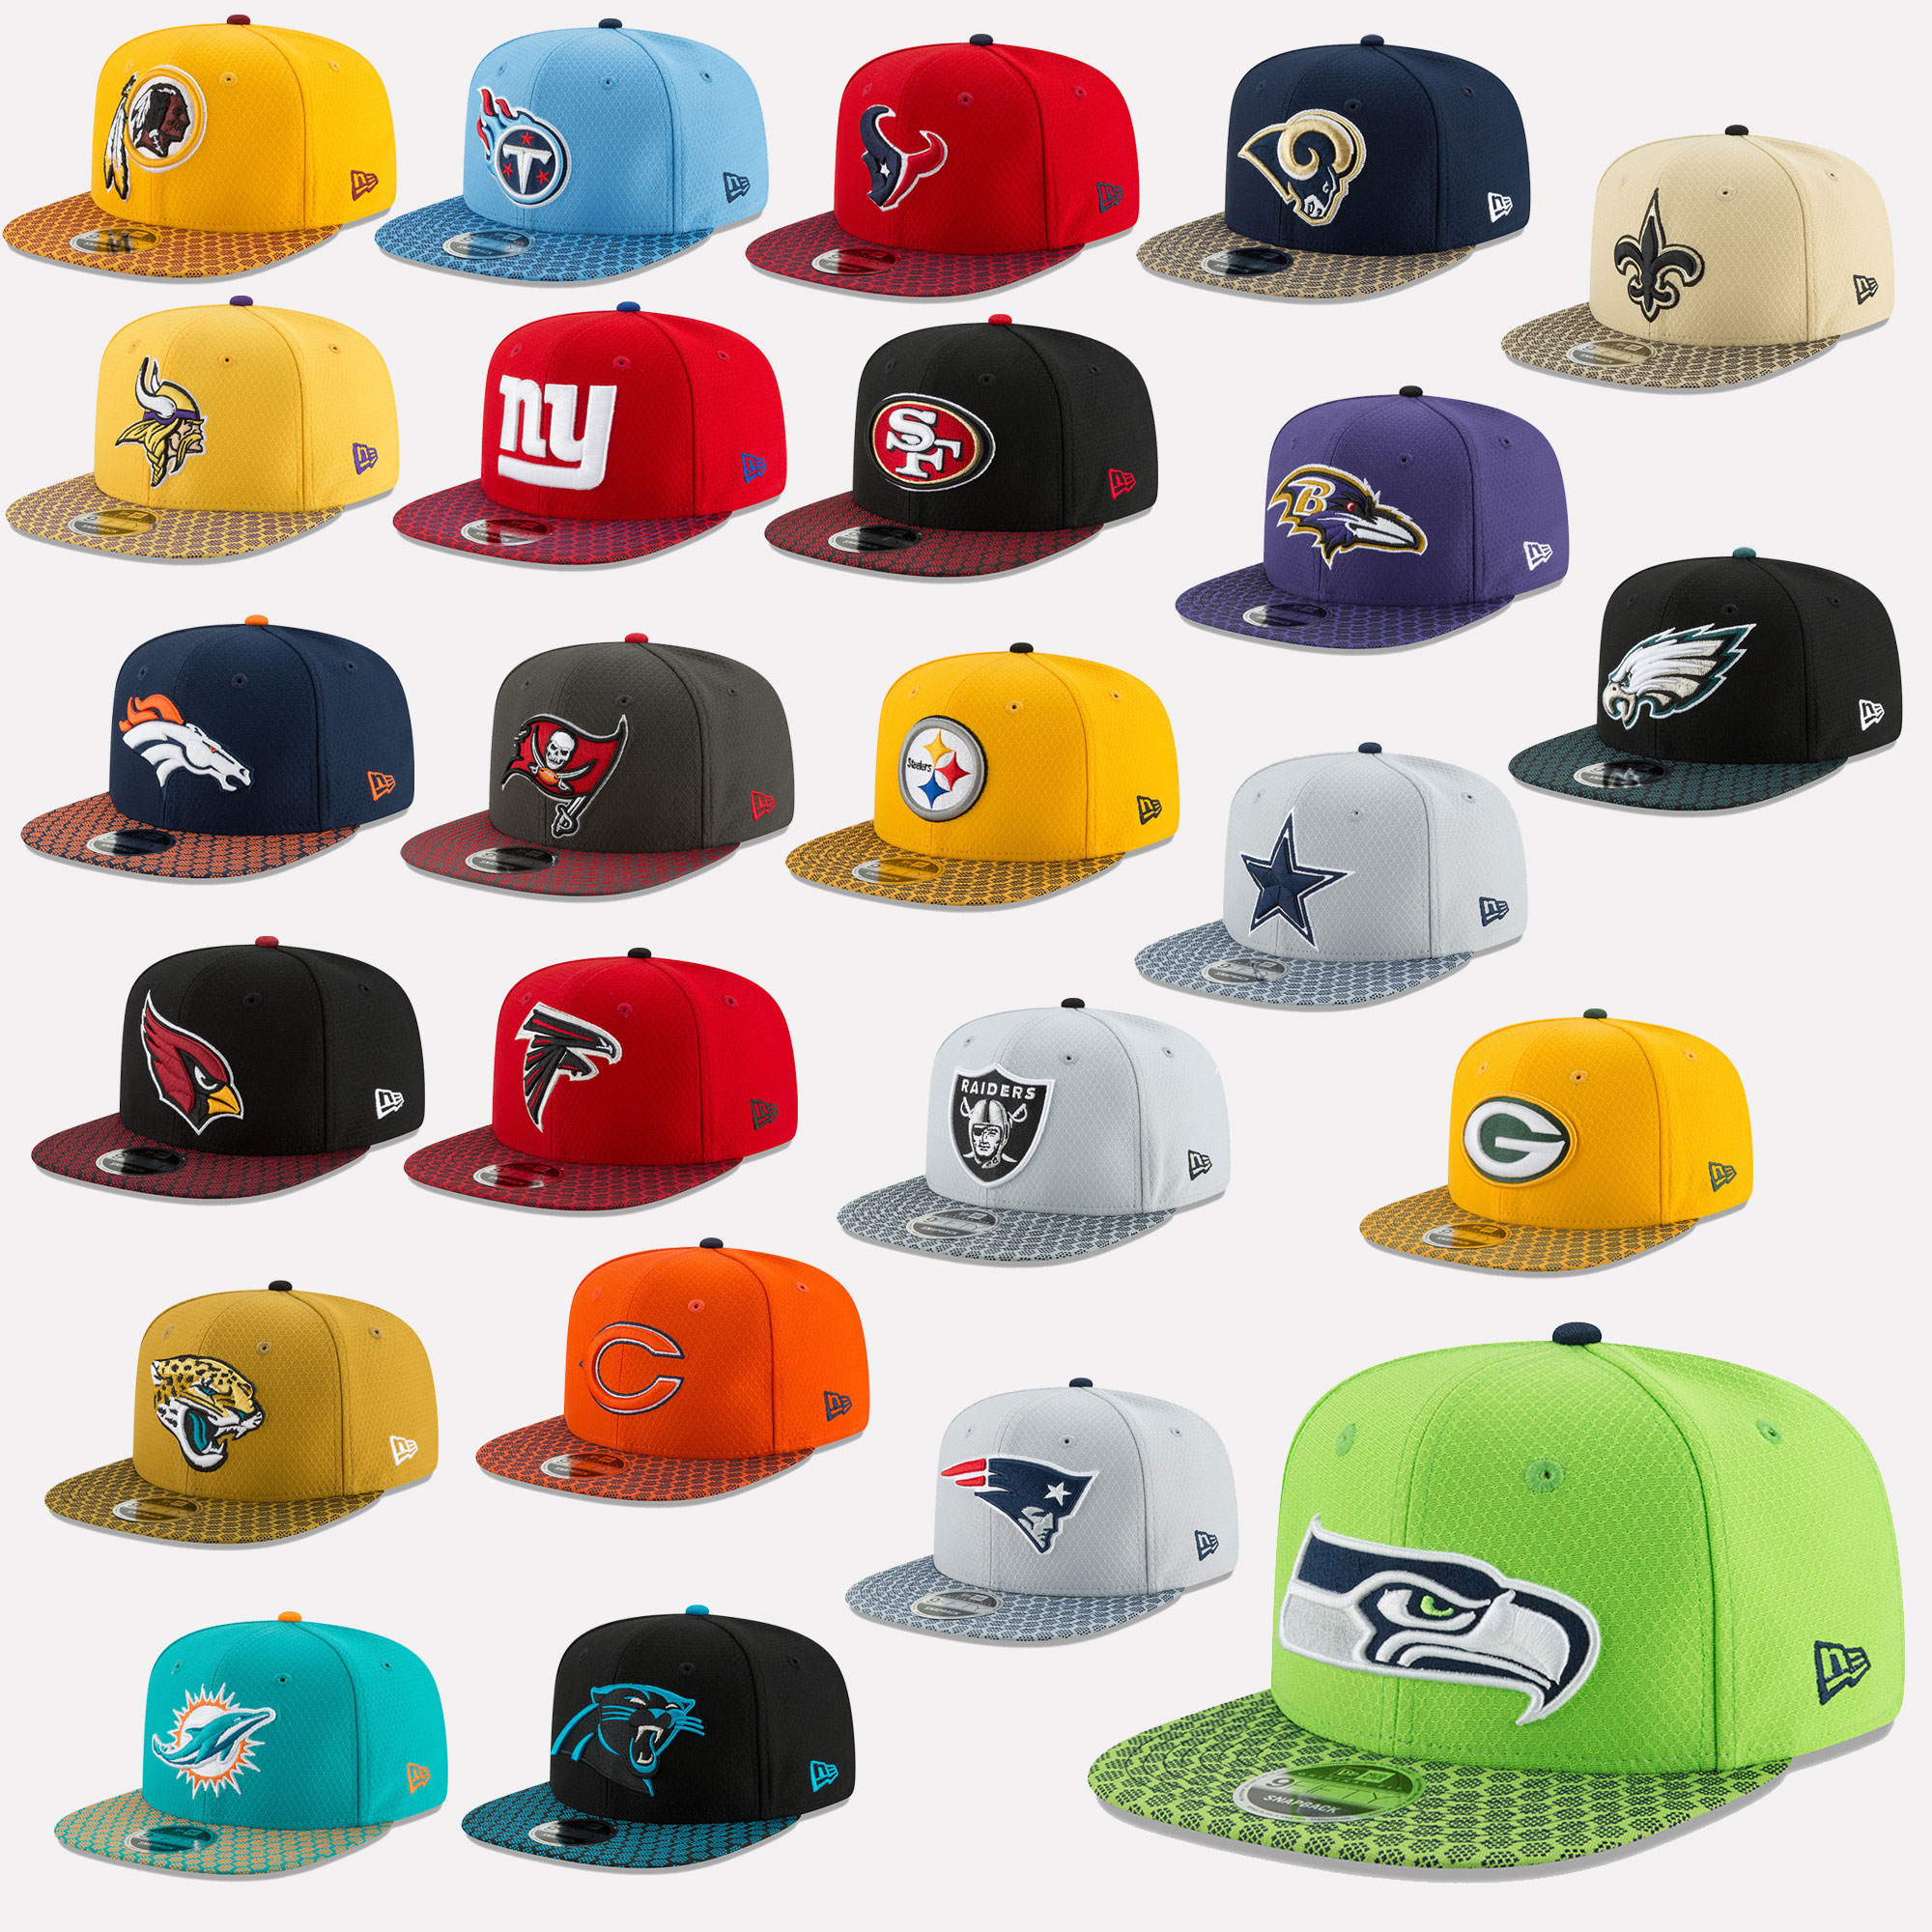 Details about New Era Cap 9fifty Snapback NFL Sideline 2017 Seahawks  Patriots Raiders 7ea9ae9aa82c